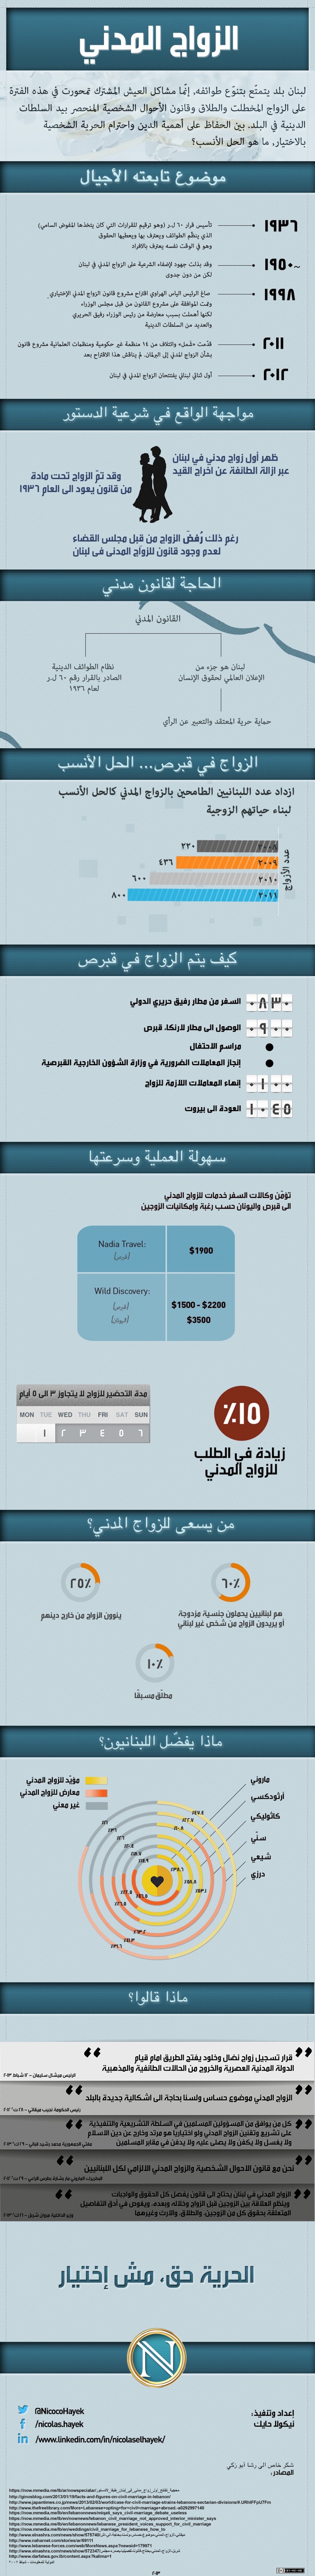 Civil Marriage in Lebanon (Arabic) Infographic